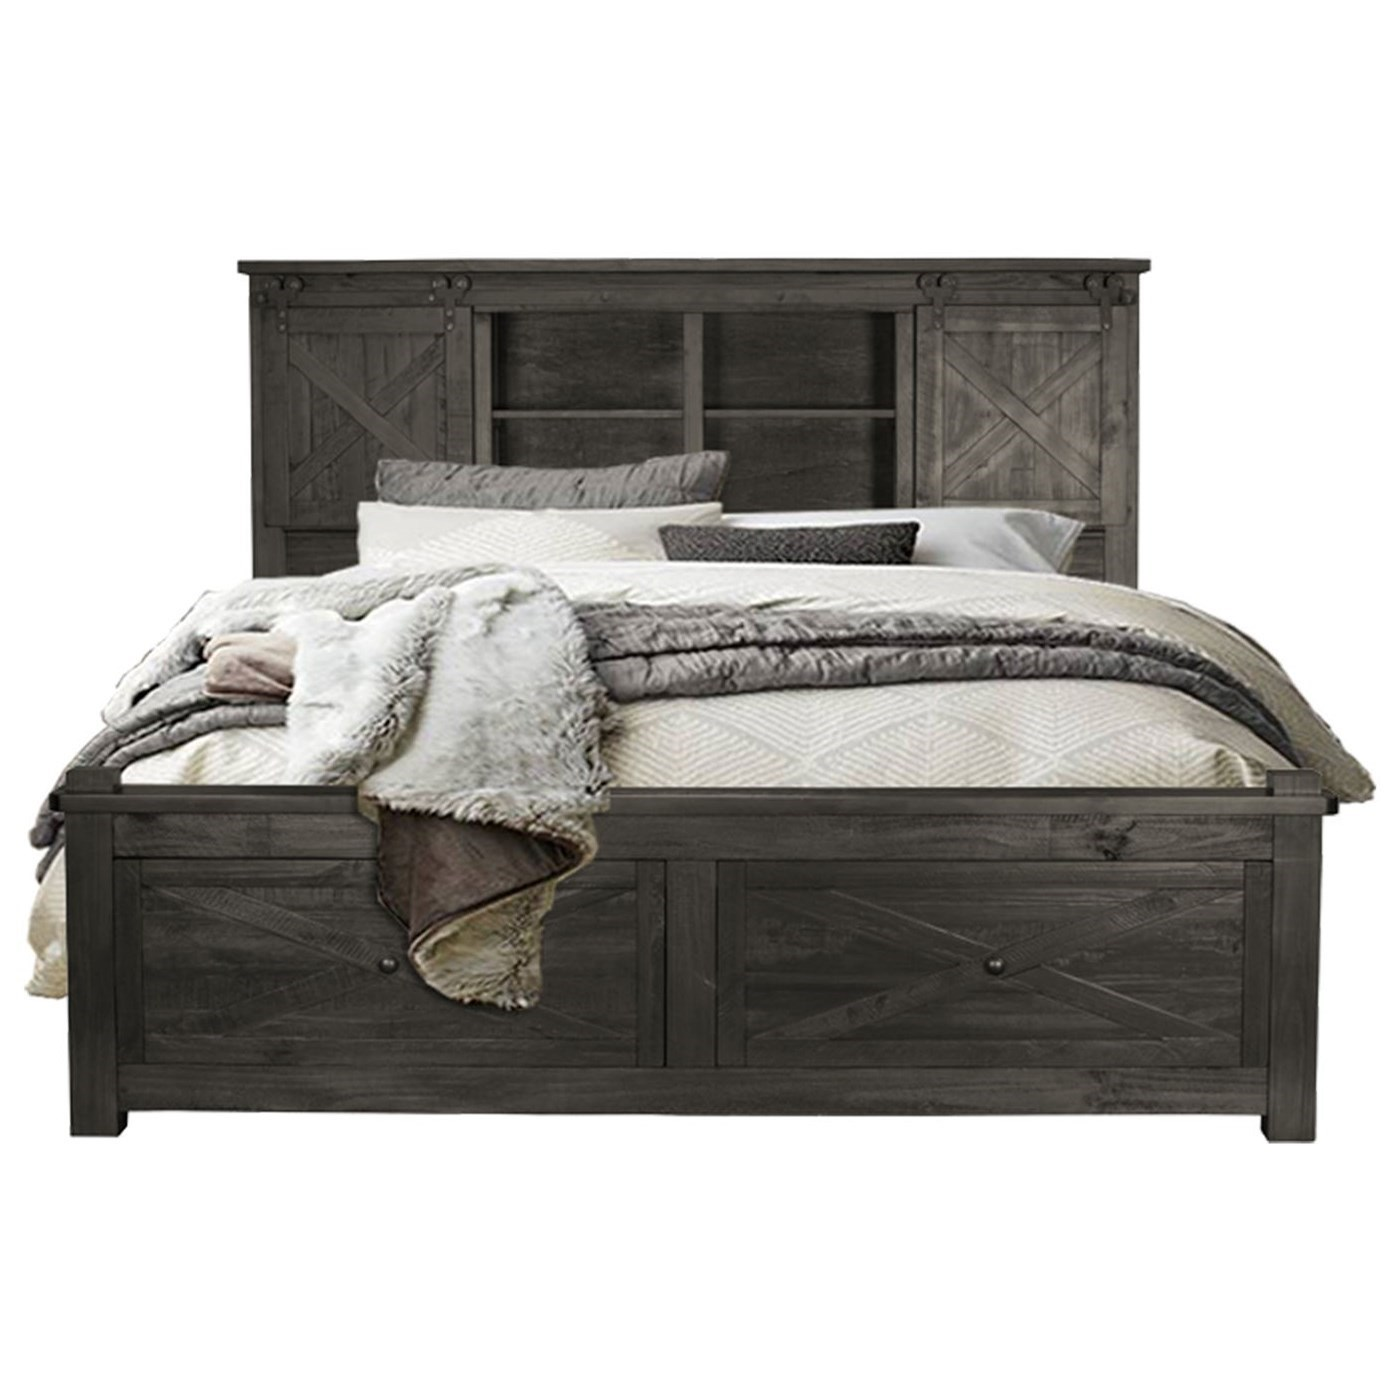 Sun Valley California King Bed with Footboard Storage by A-A at Walker's Furniture